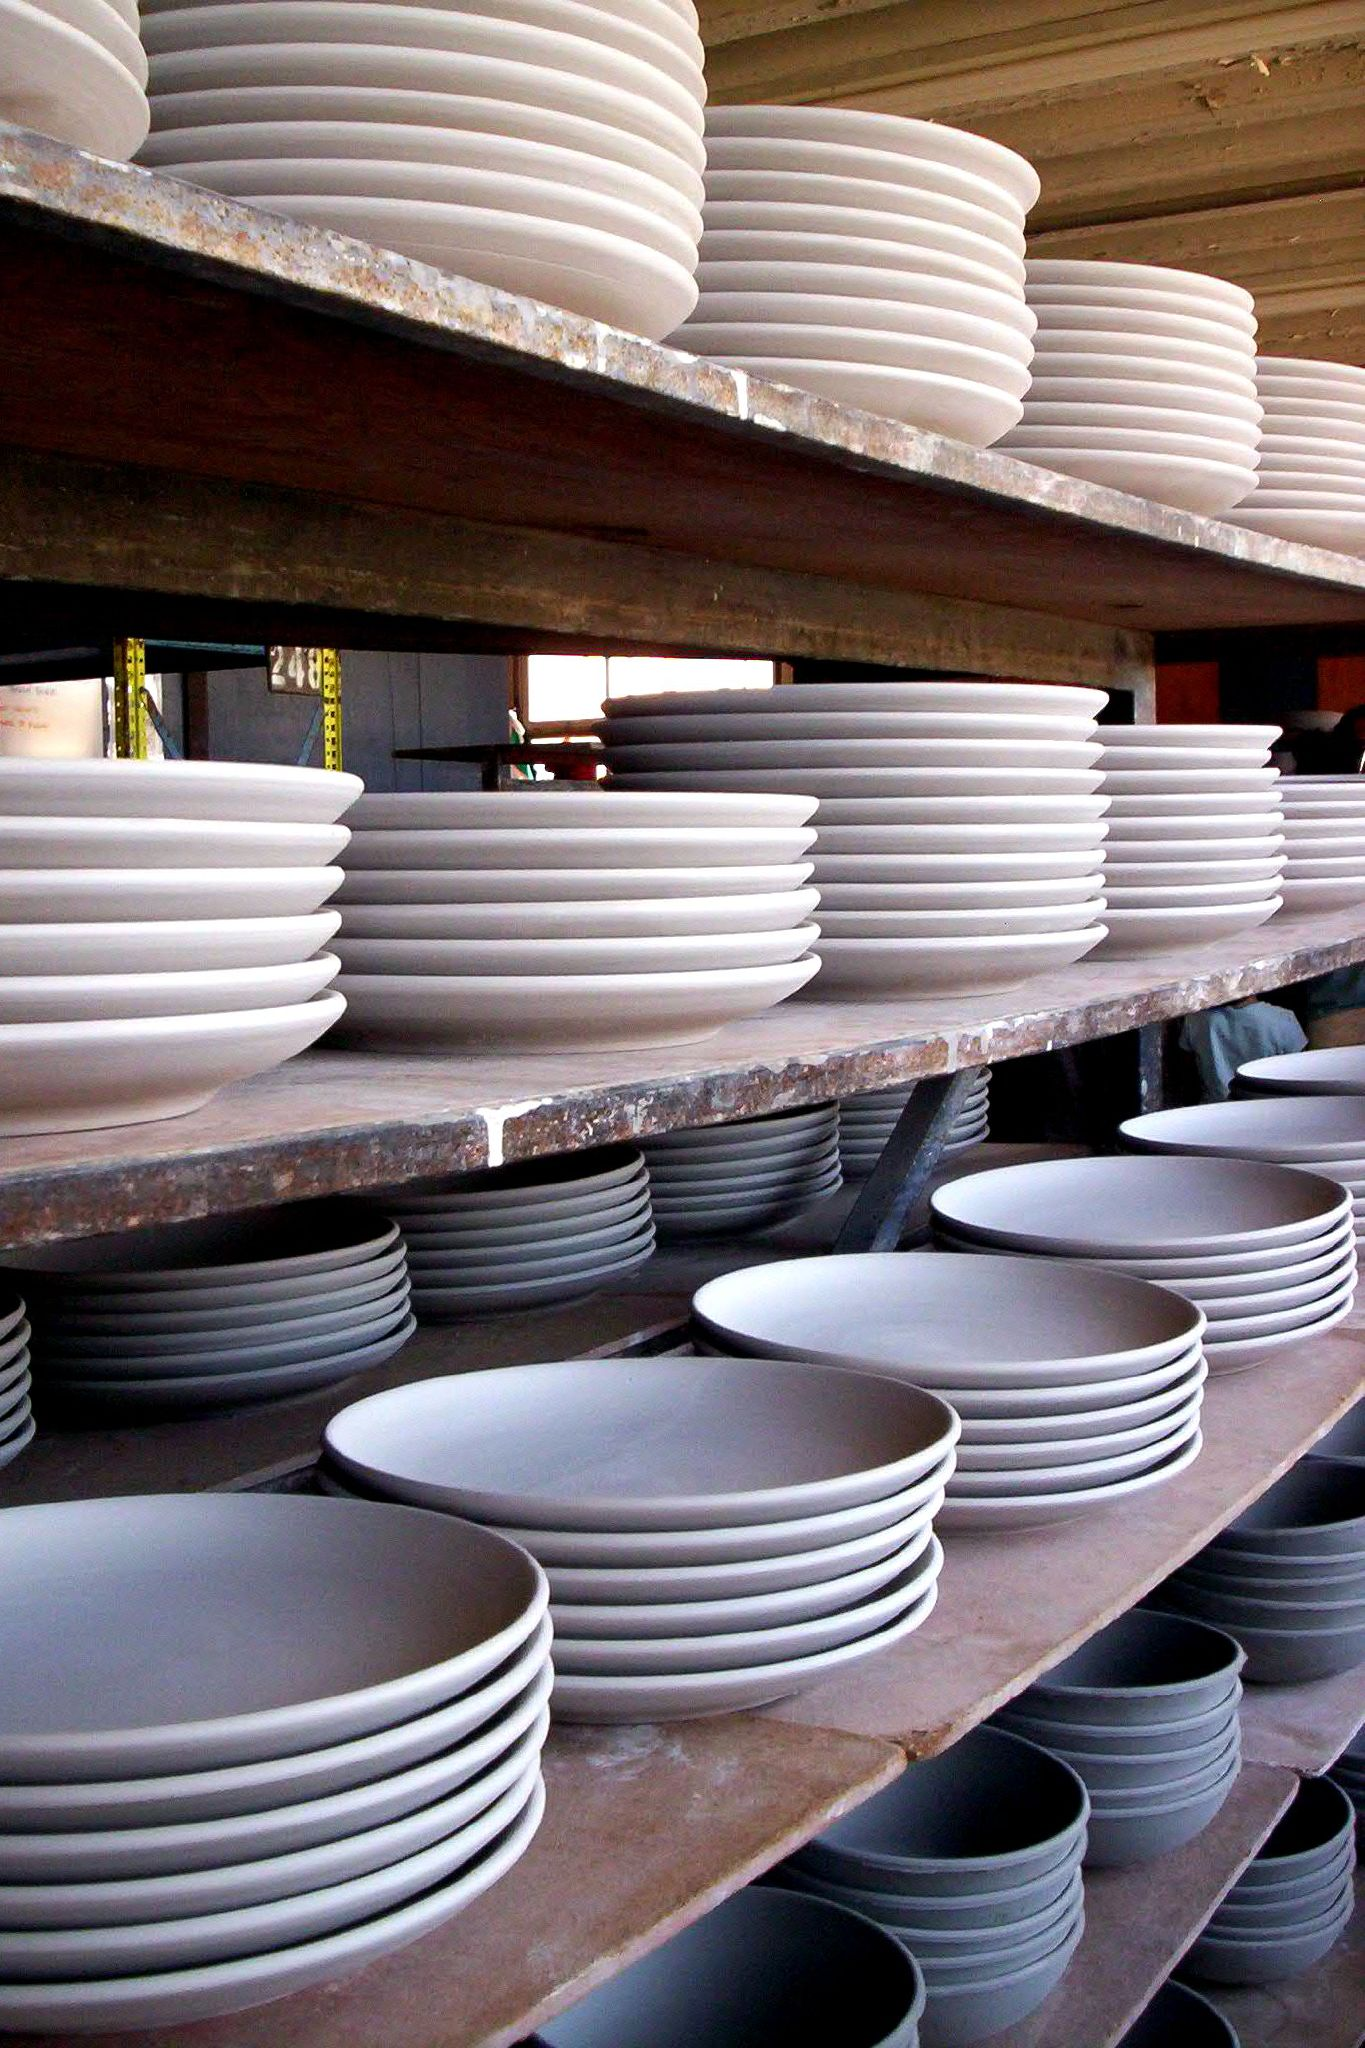 FileUnglazed plates.jpg & File:Unglazed plates.jpg - Wikimedia Commons